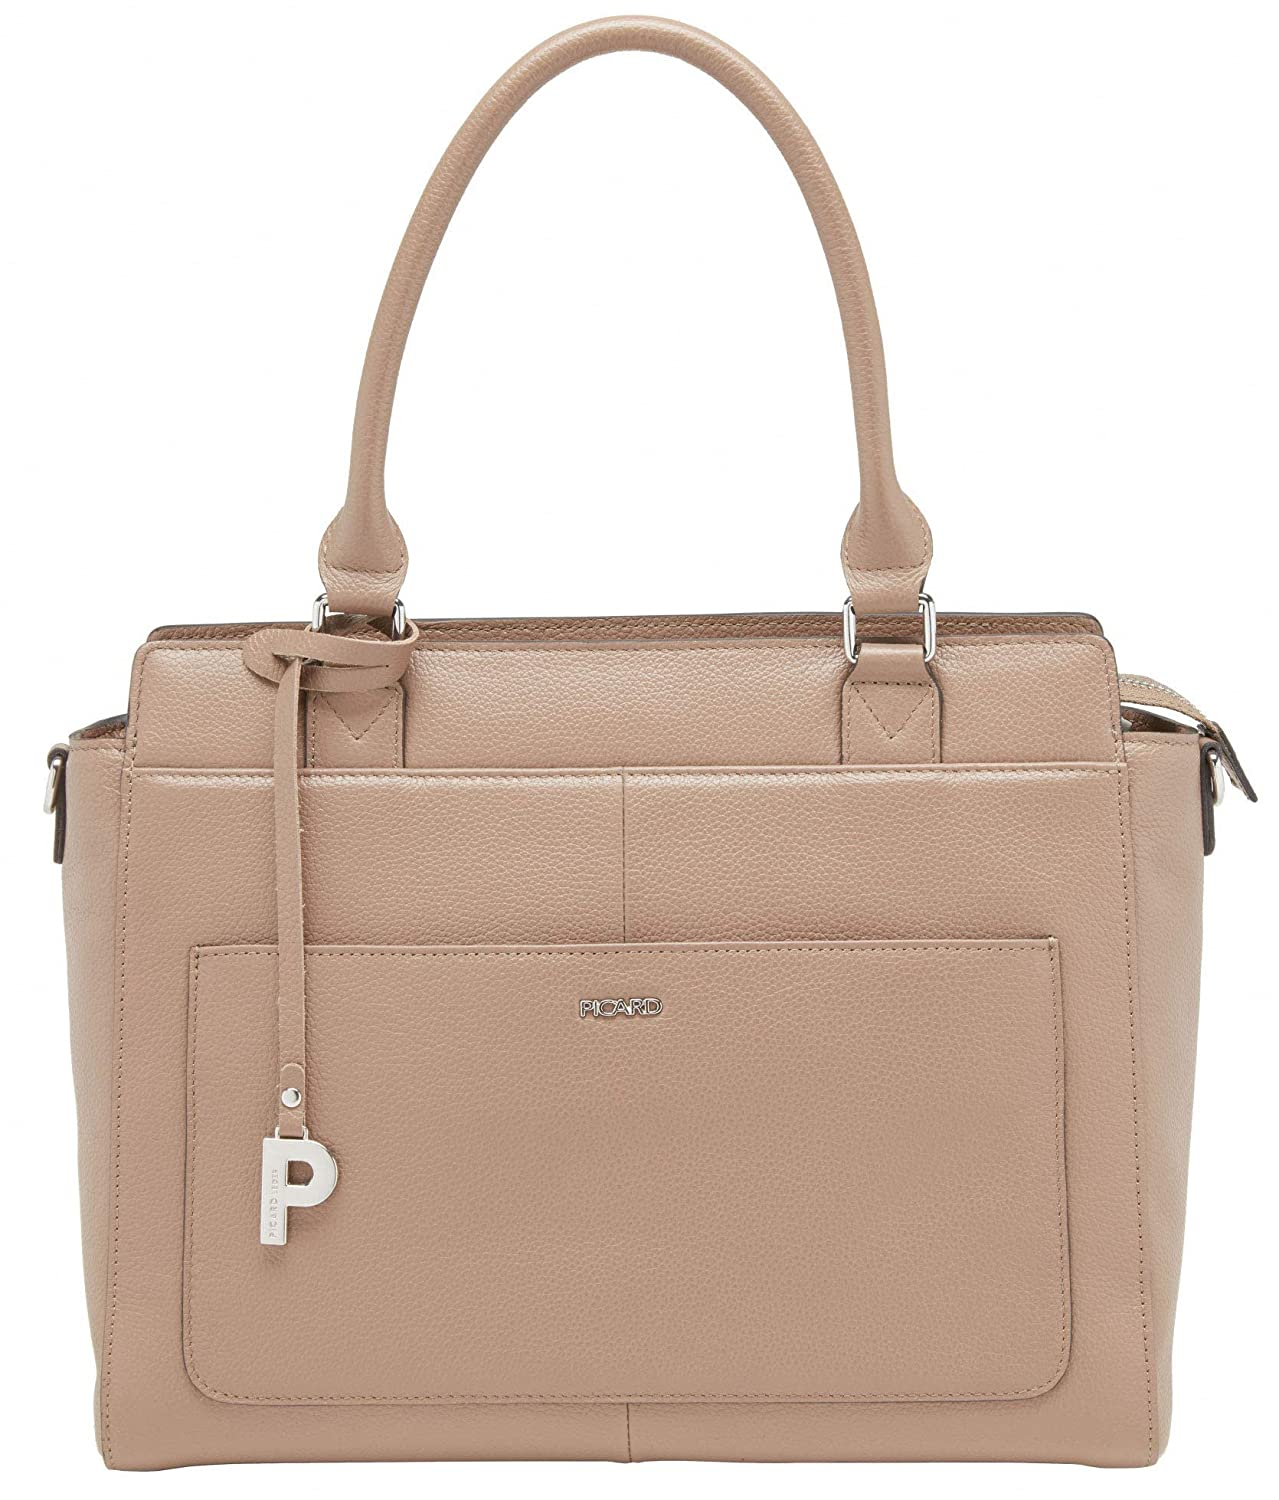 75a042f3311fd Picard Jingle Ladies Shopper Cattle Leather 9343 Graphite Rosewood   Amazon.co.uk  Shoes   Bags